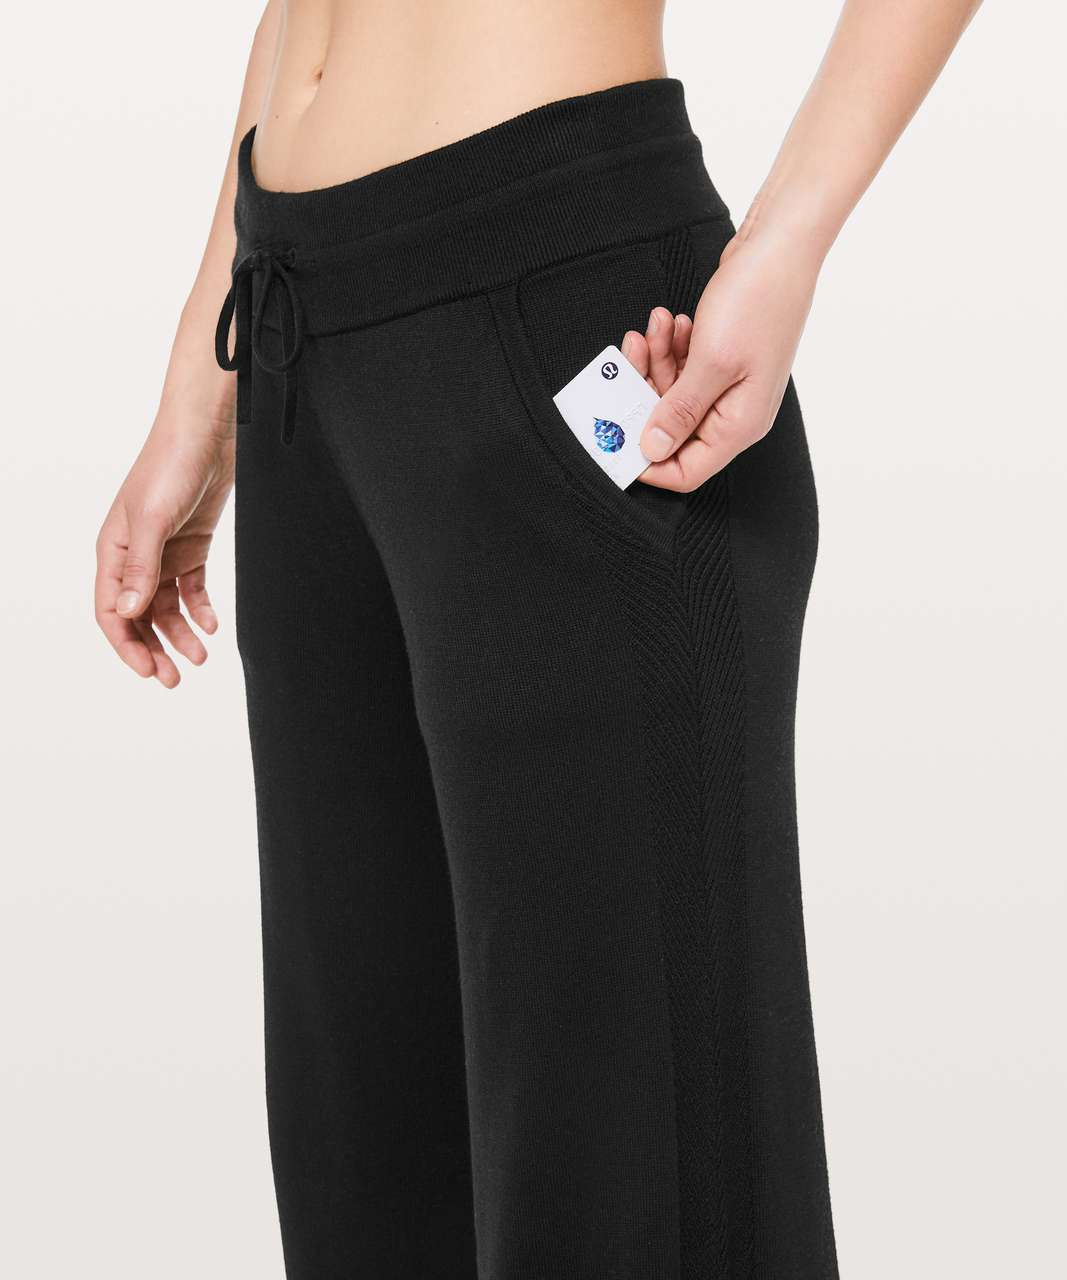 Lululemon In The Comfort Zone Pant - Black